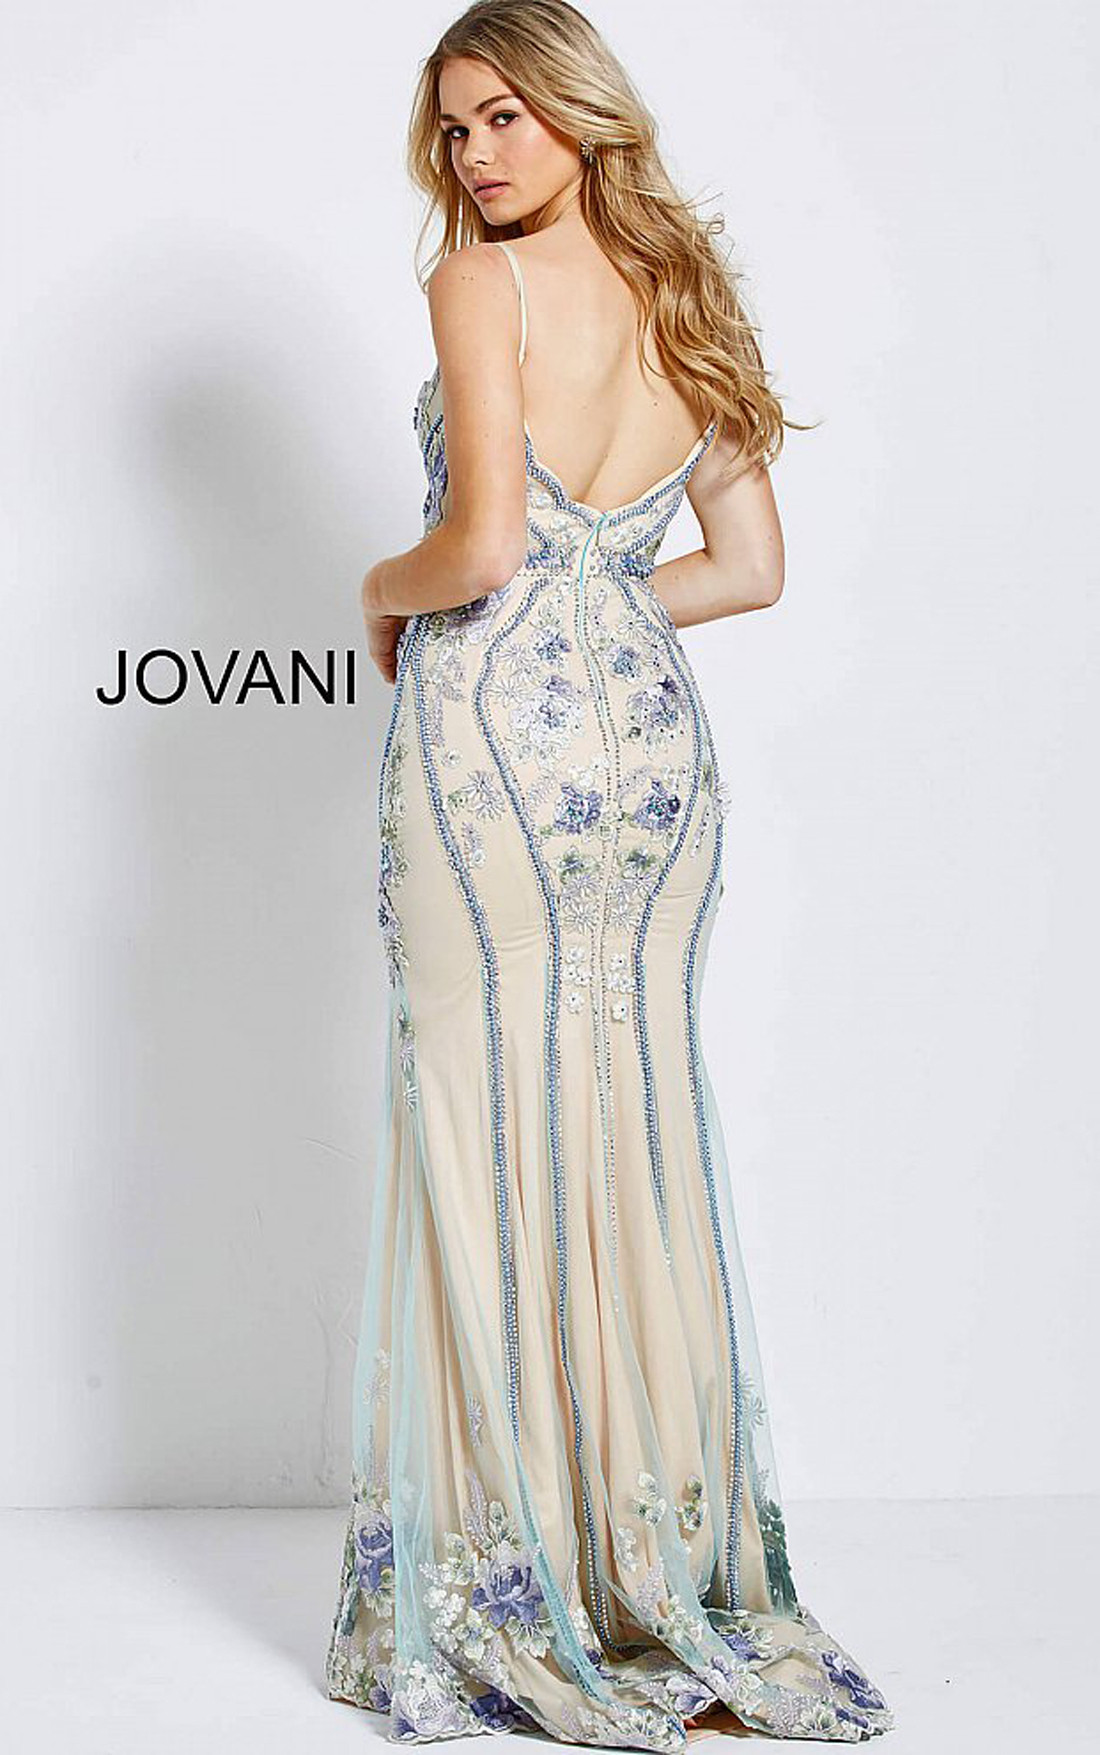 Jovani - Blush Floral Embellished Spaghetti Straps Dress (55816)